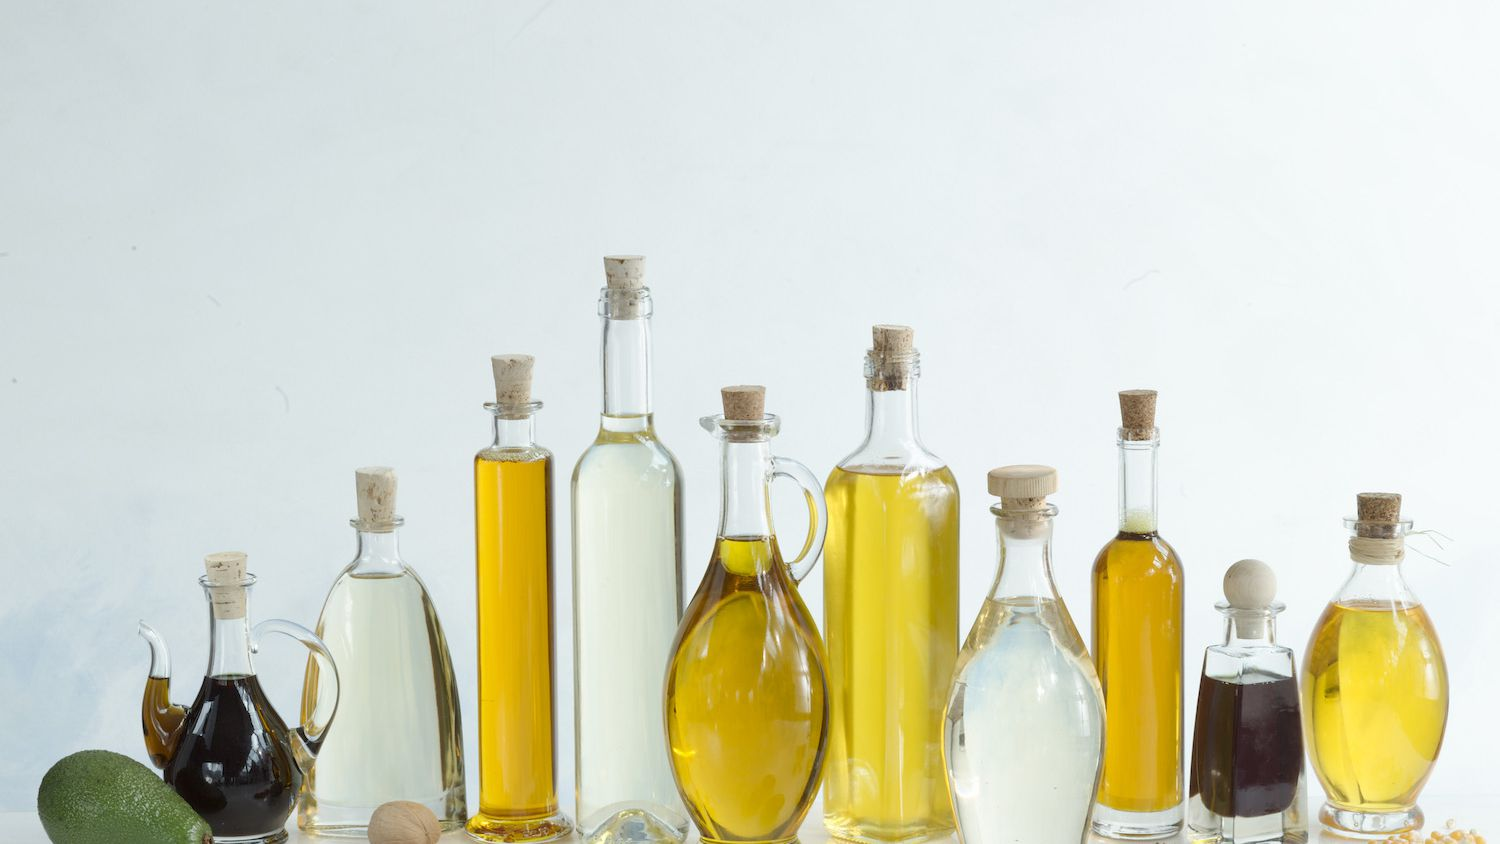 How Are Edible Oils Used?